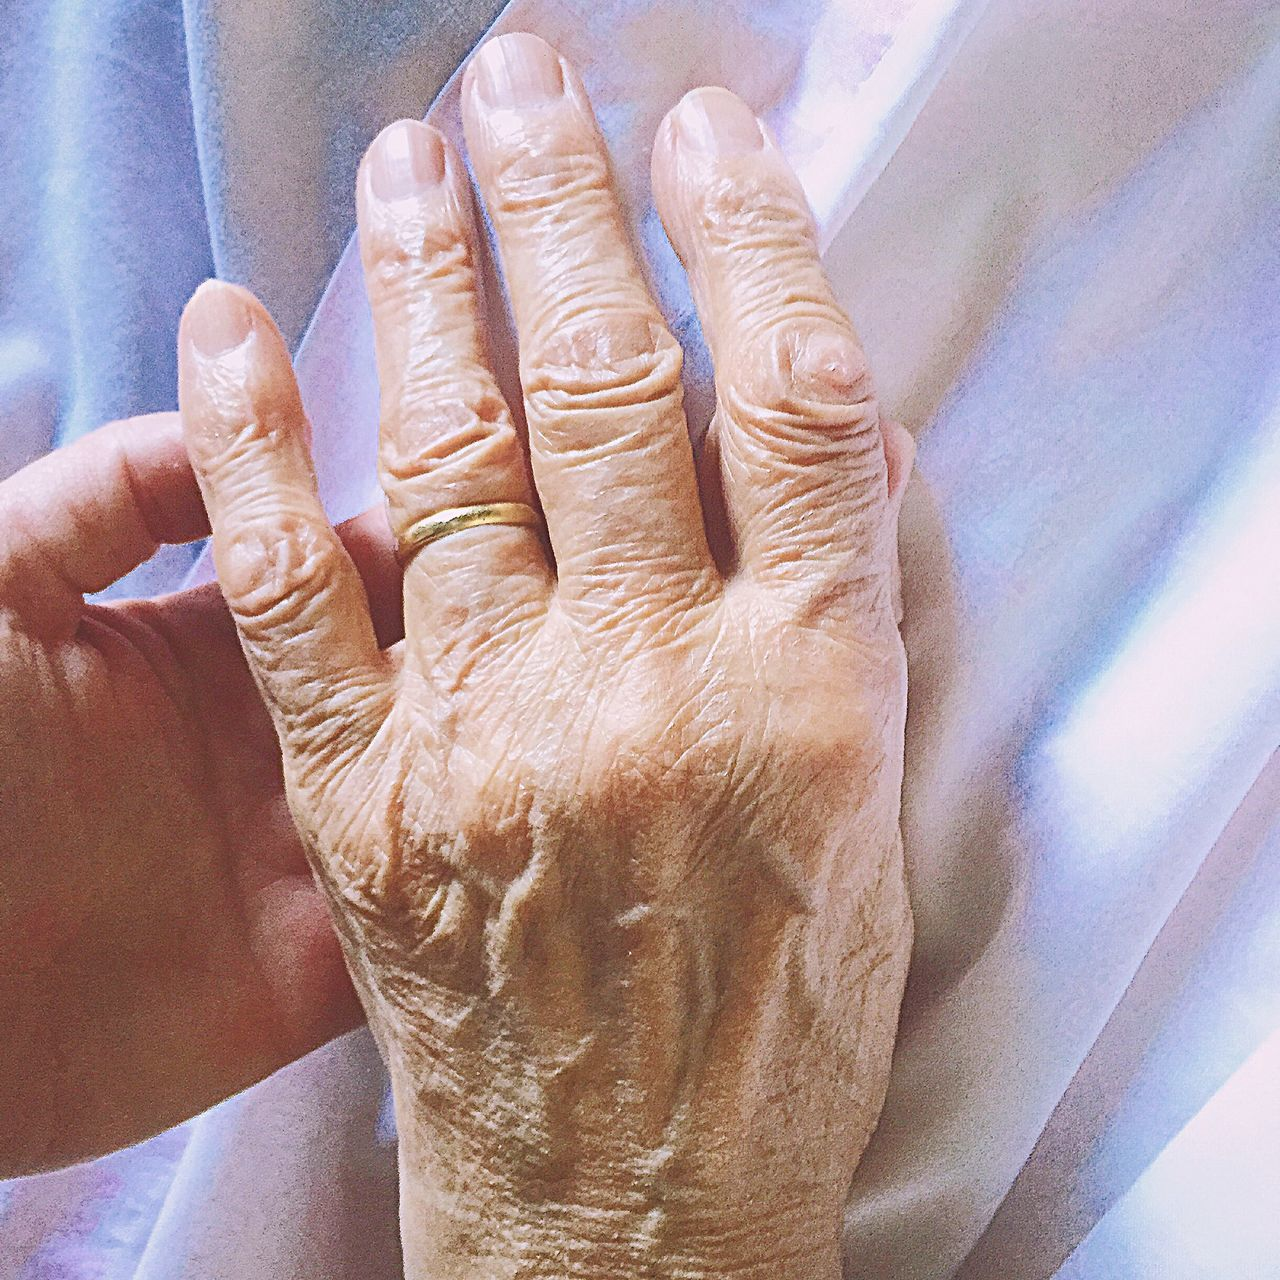 Human Hand Human Body Part Close-up Indoors  Women People One Person Adult Adults Only Only Women Day Wrinkled Skin Wrinkles Wrinkled Wrinkled Hand Aged Aged Hands Old Old Age Old Hands Experience Of Life Fingers Hand Experience Life